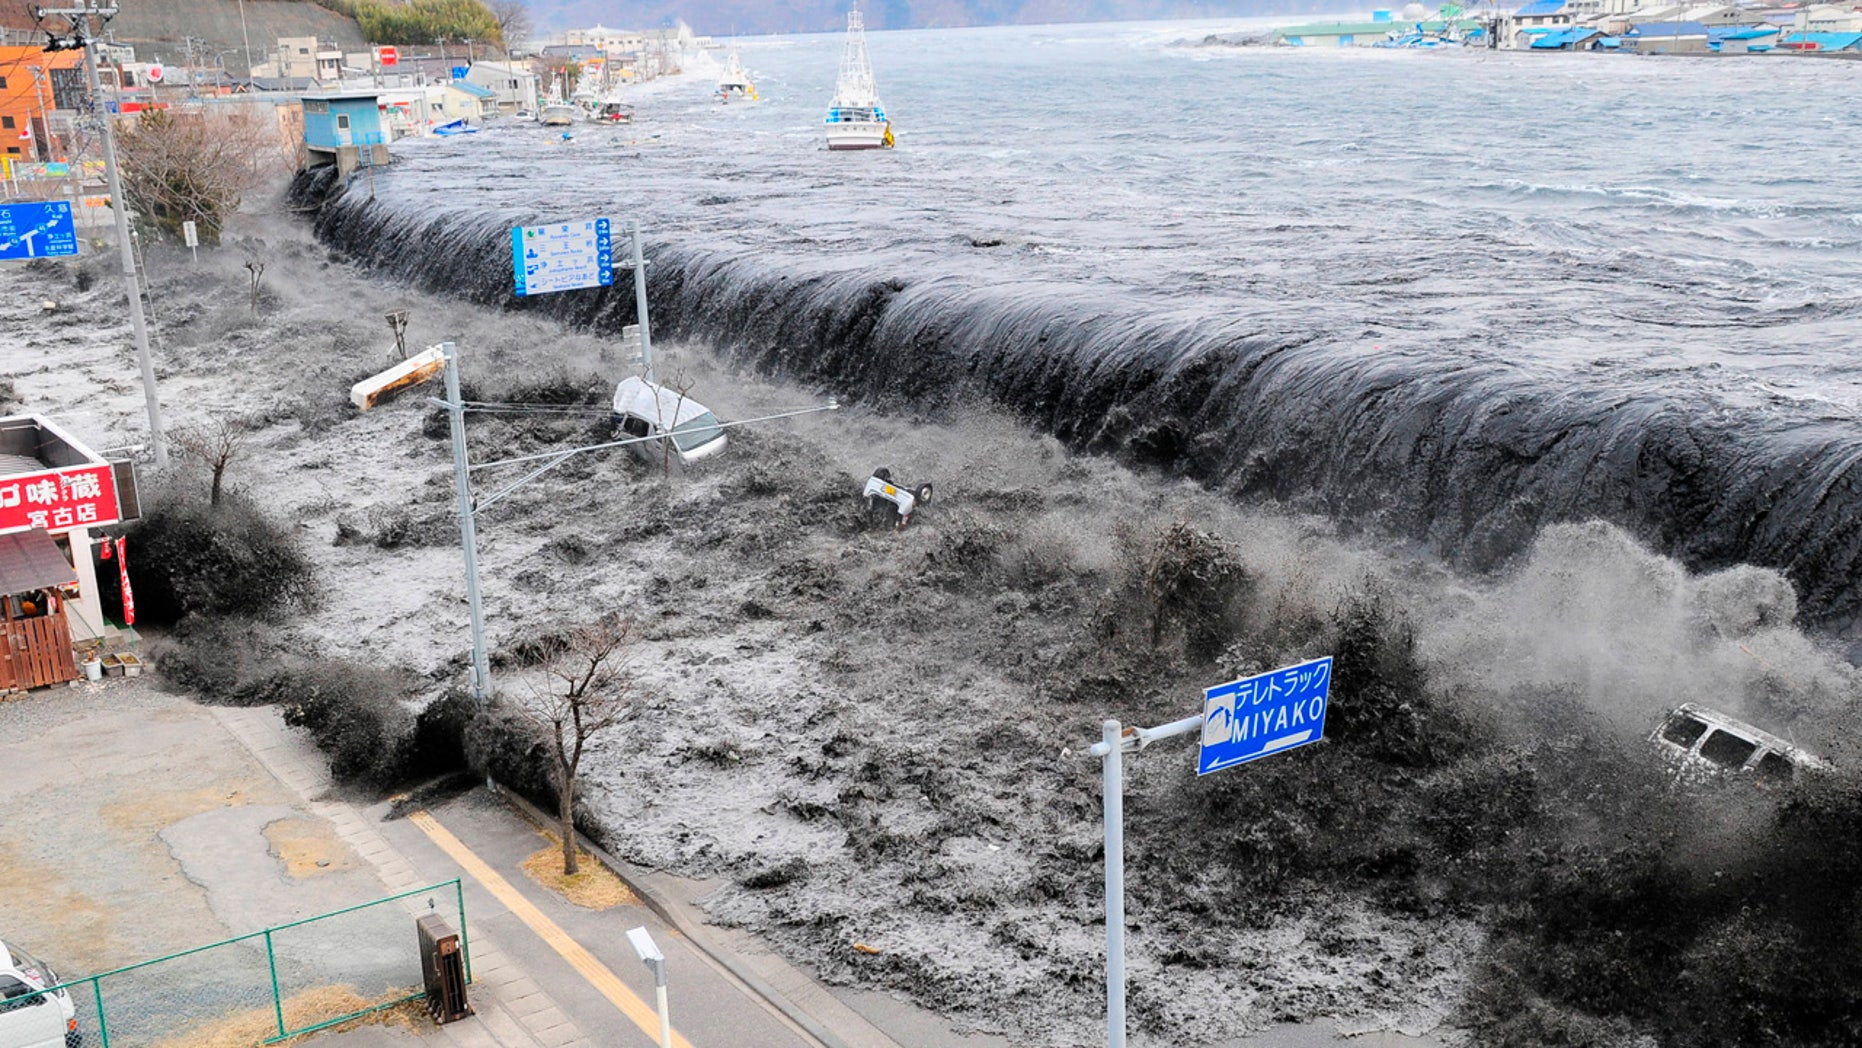 March 11, 2011: A wave approaches Miyako City from the Heigawa estuary in Iwate Prefecture after the magnitude 8.9 earthquake struck the area